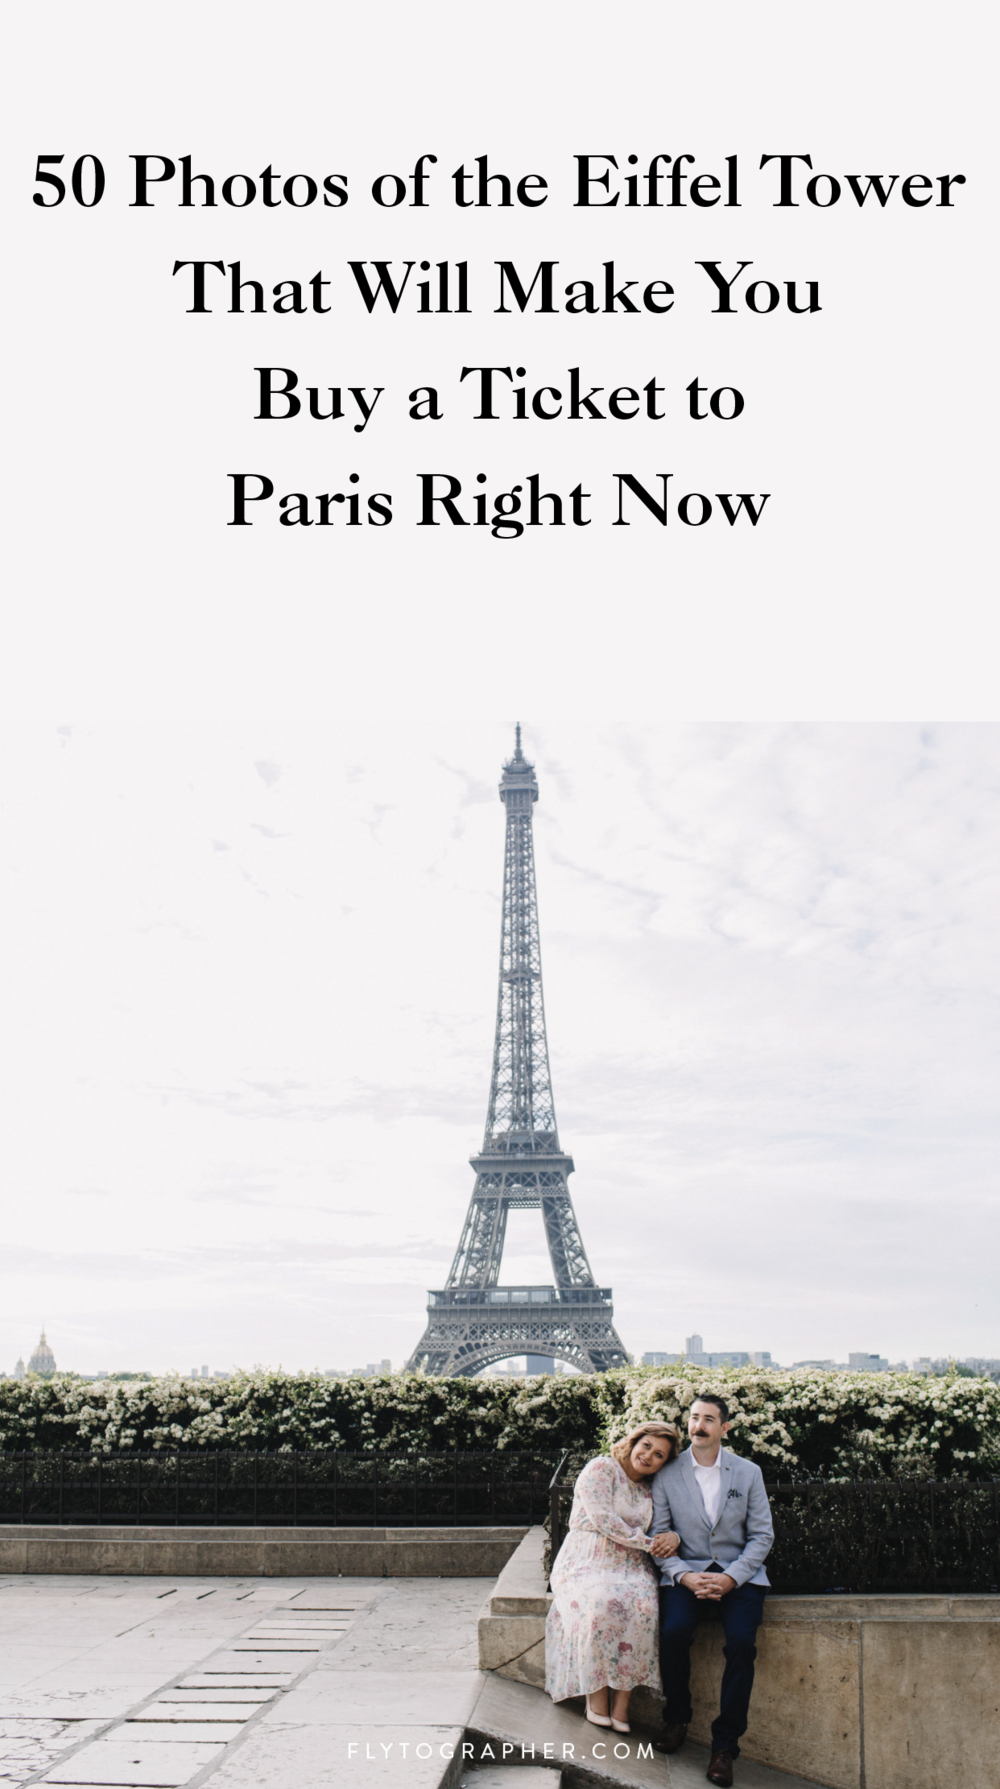 Get inspired for your next trip to Paris - take a look at 50 of the most beautiful photos the Eiffel Tower that will have you packing your bags for France!  | Travel + Vacation Photographer | Family Vacations | Engagement Proposals | Honeymoons | Anniversary Gifts | Bachelorette Ideas | Solo Traveller Tips Flytographer captures your travel memories - everything from surprise proposals, honeymoons, family vacations, and more.